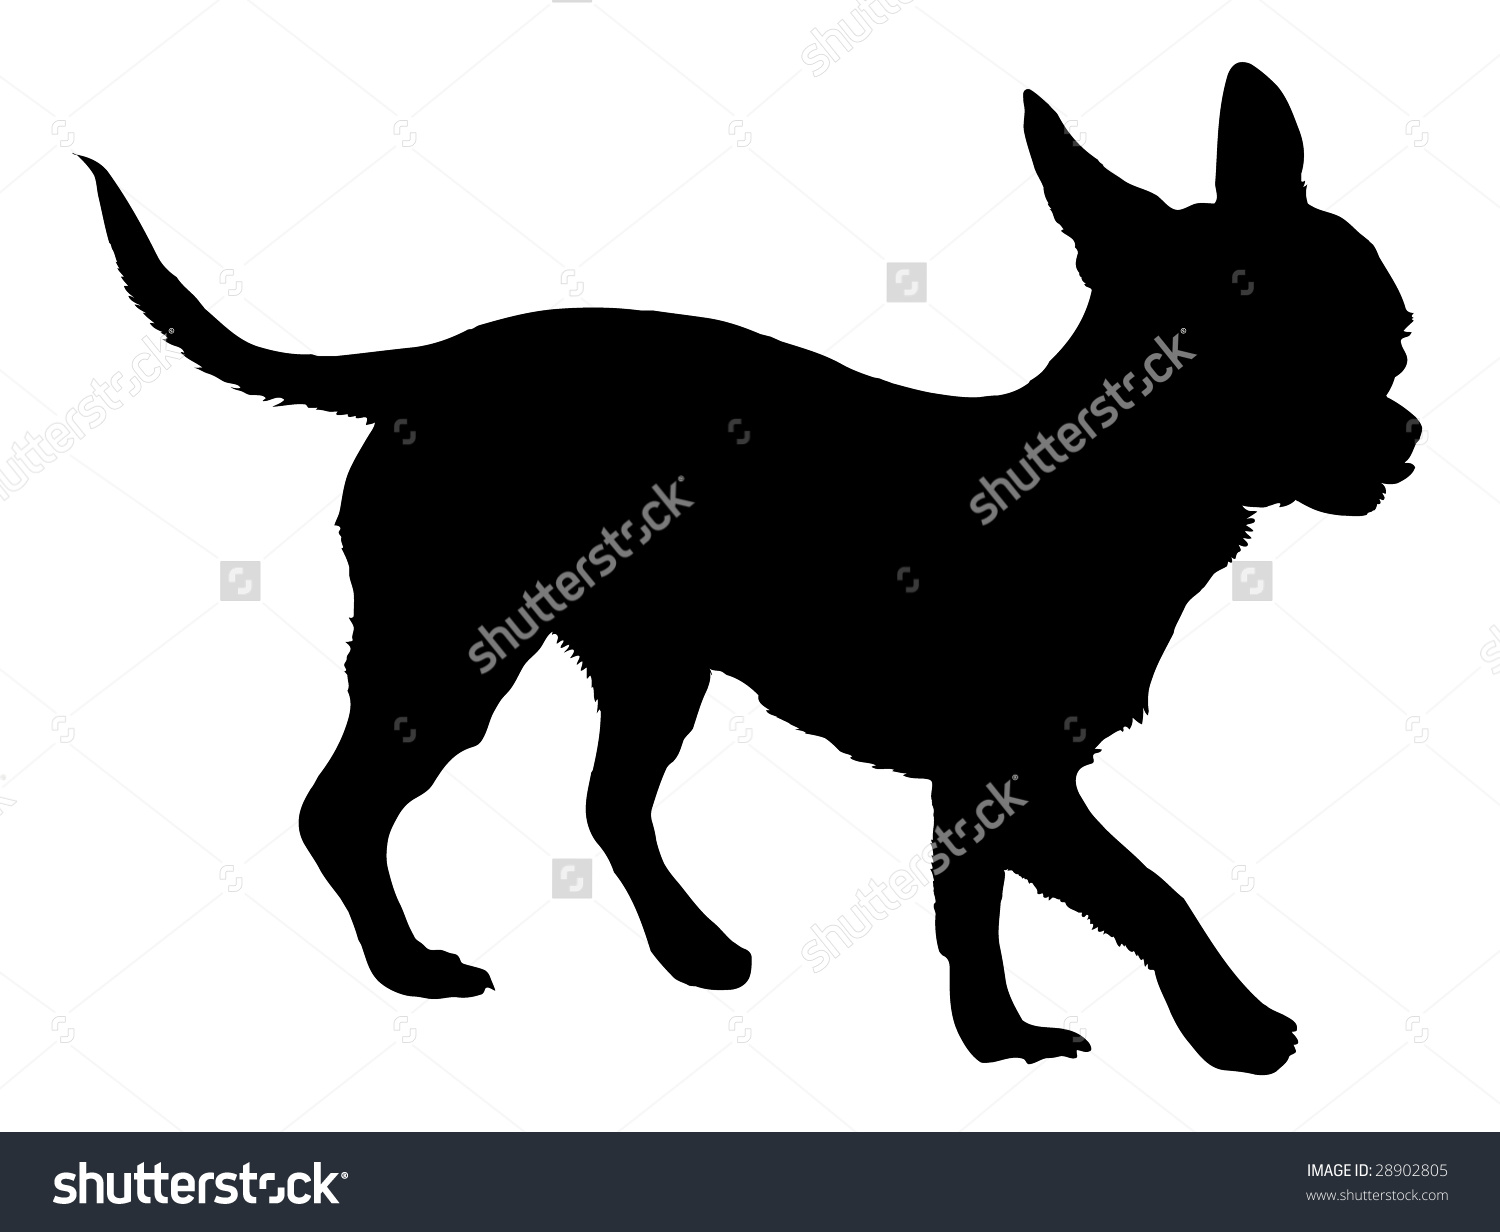 Silhouette Dog Breed Chihuahua Stock Vector 28902805.